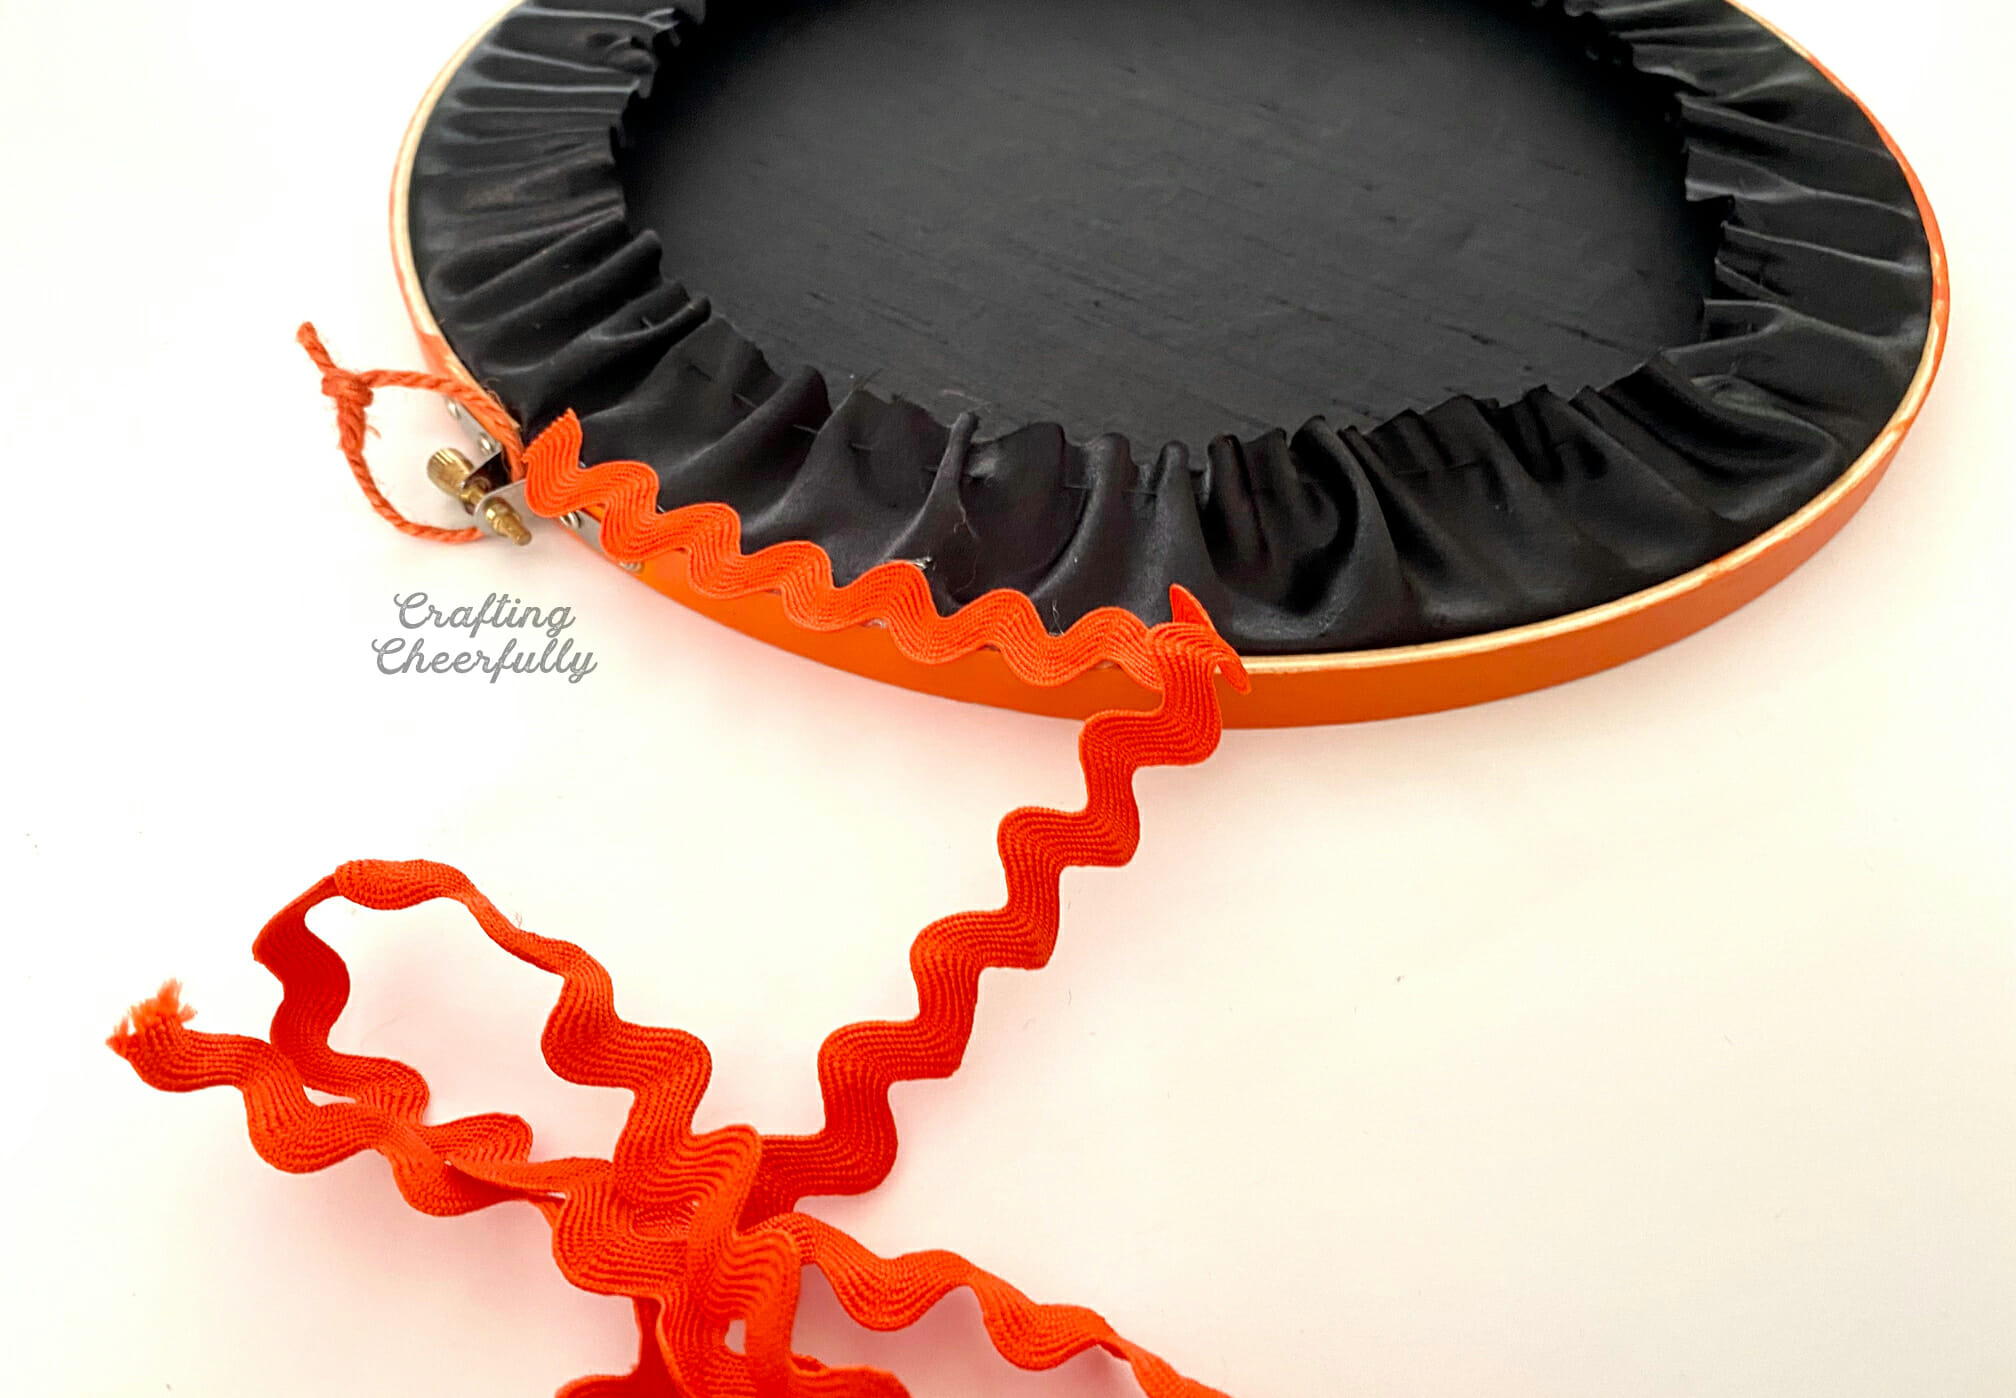 Orange ric rac is applied to the outer edge of an embroidery hoop.